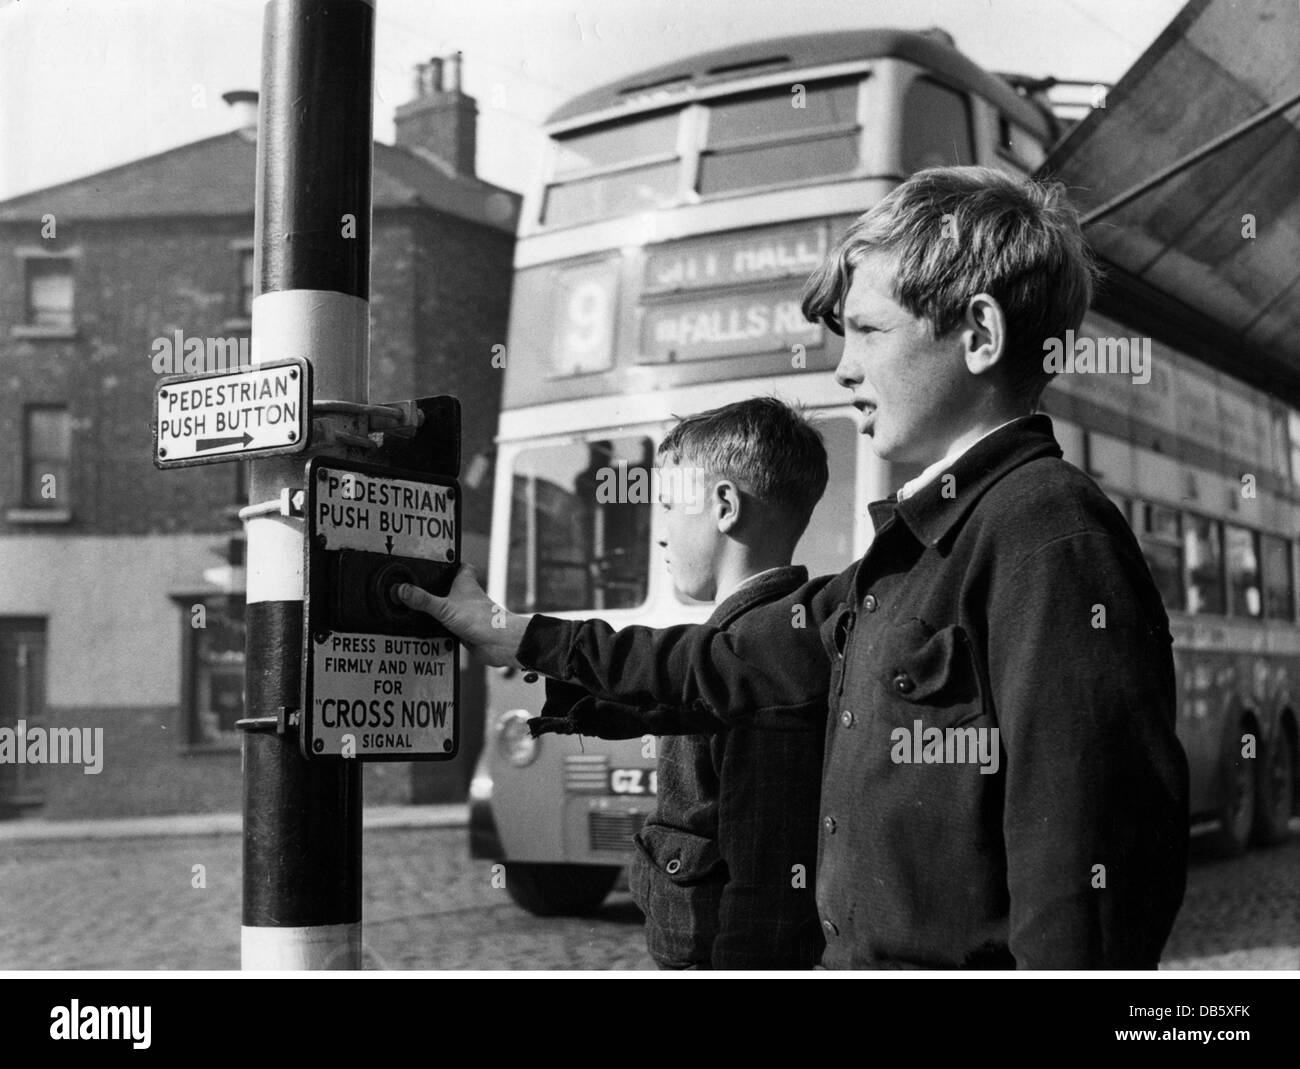 Traffic Light Circuit Stock Photos Pictures Transport Transportation Road Control Lights Two Boys Pushing The